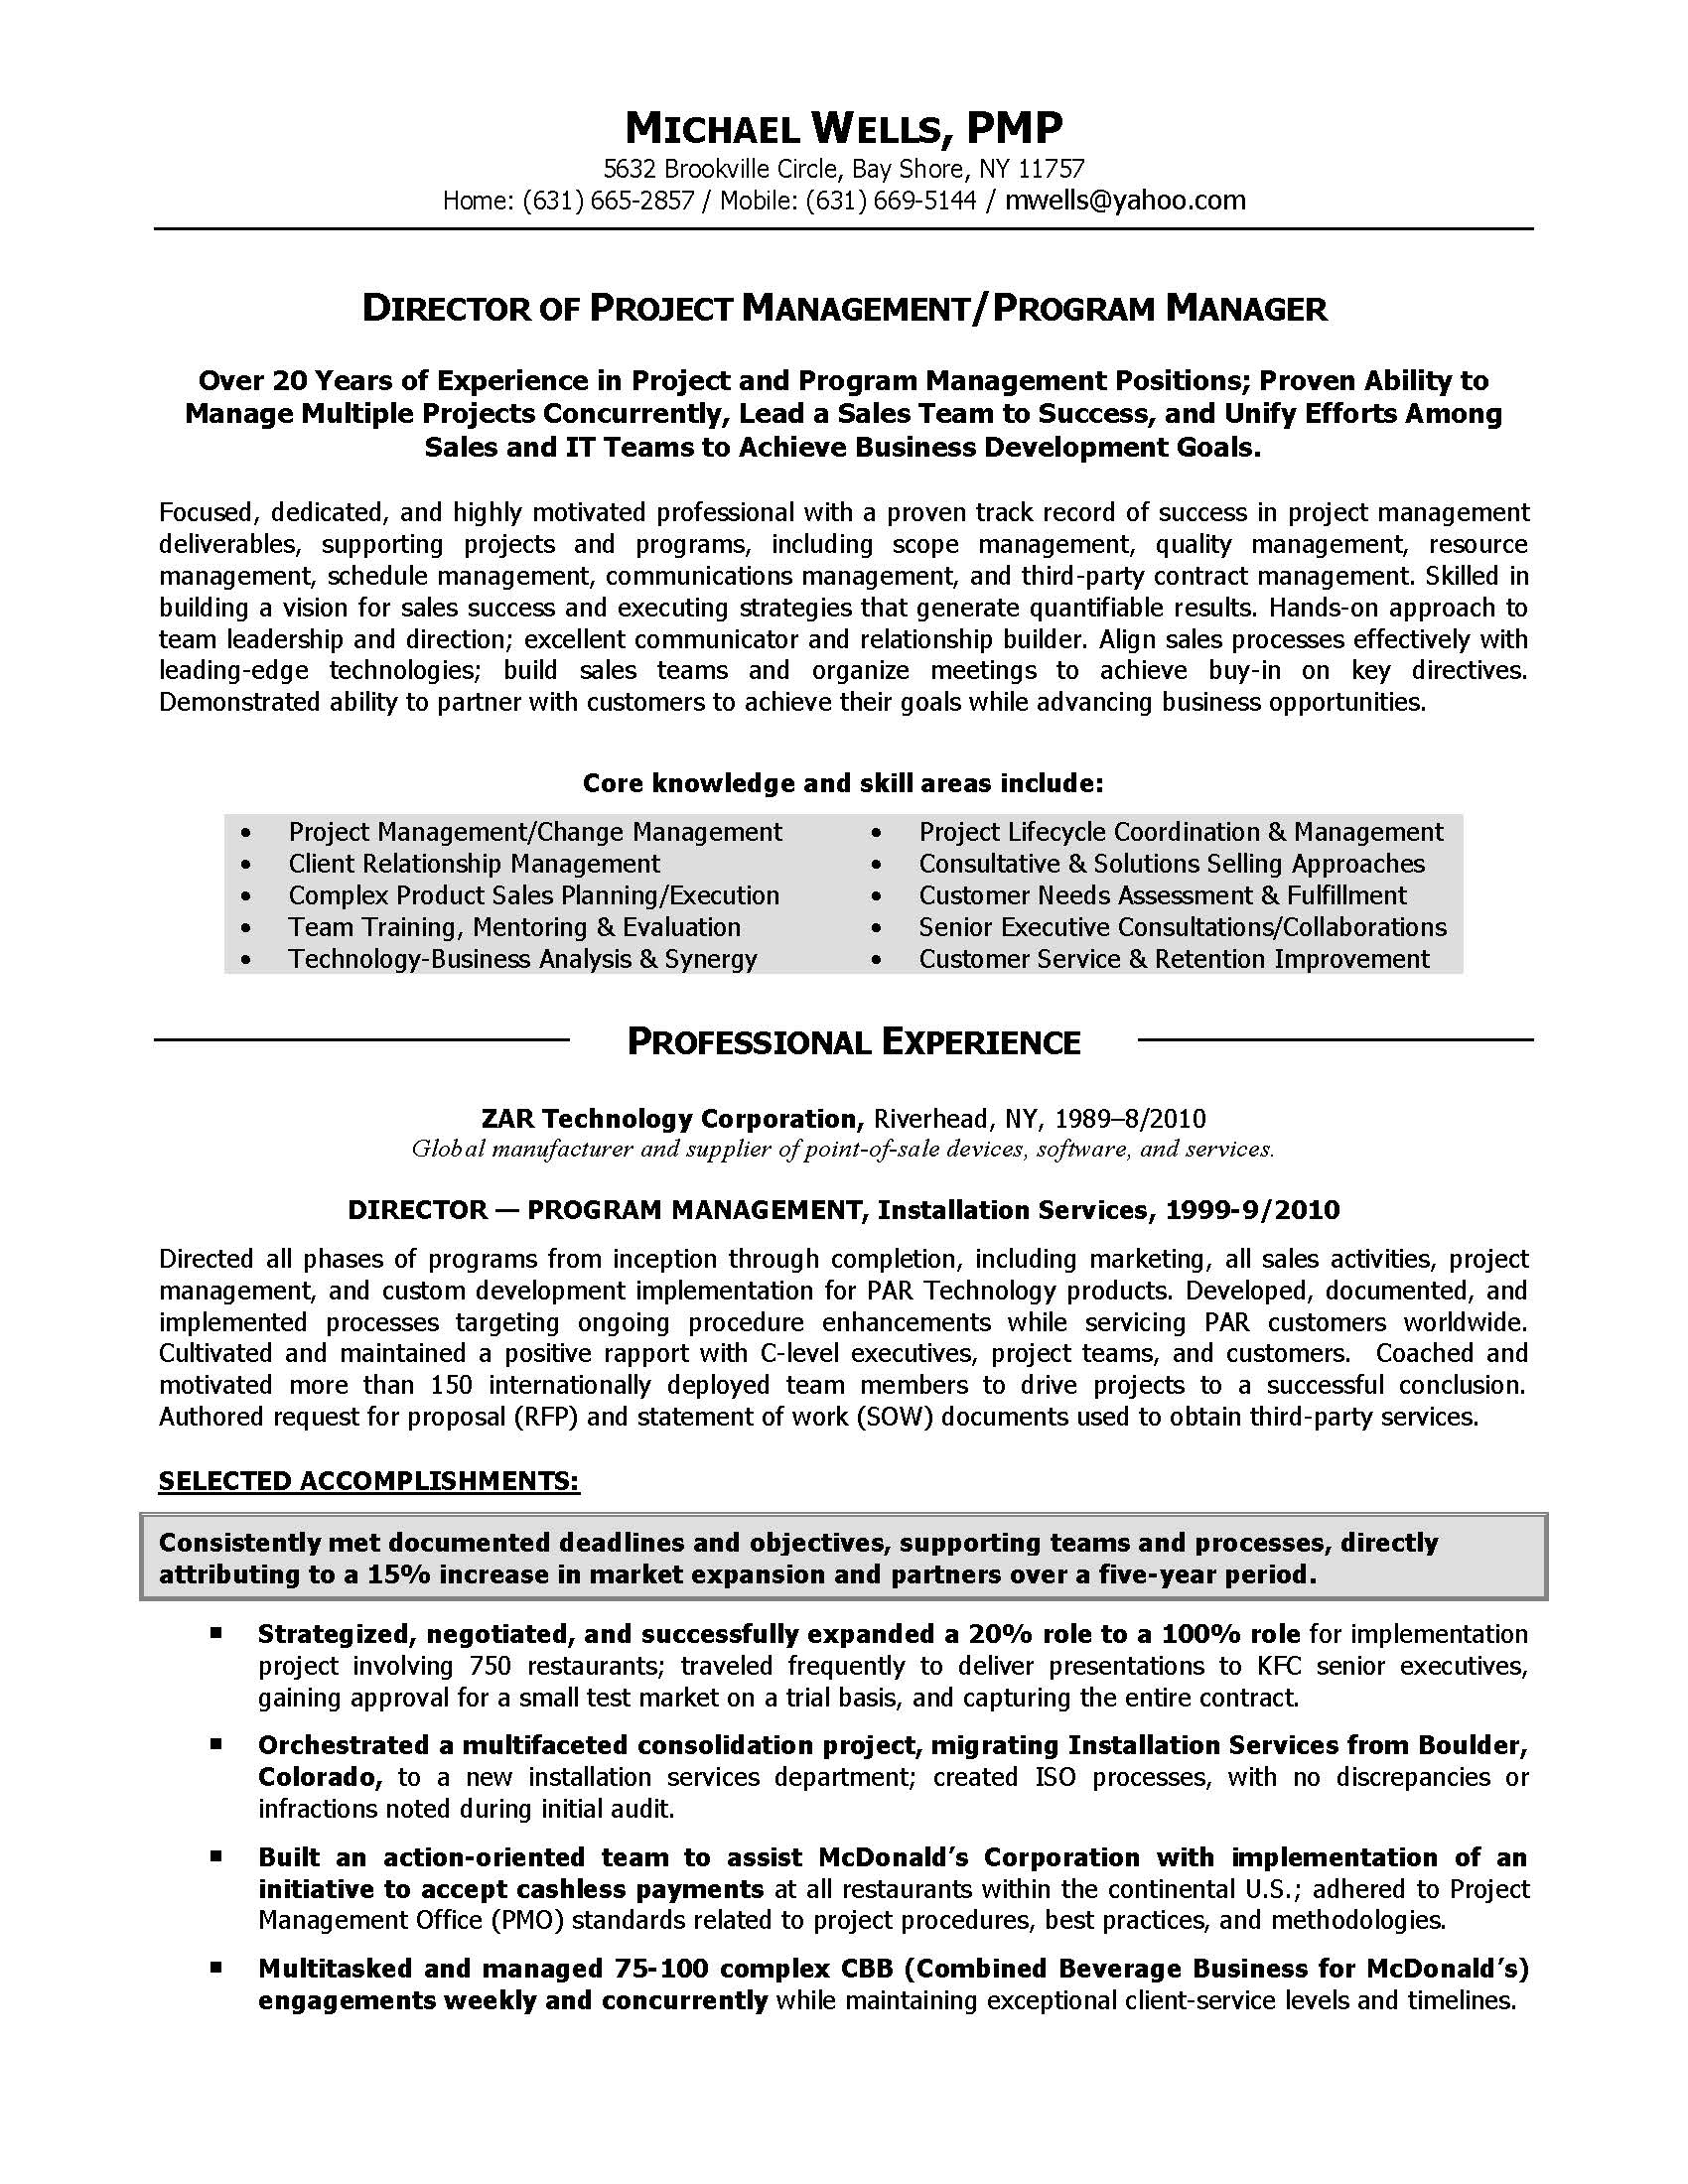 project management skills resume best resume sample it project manager resume example nkyu iws